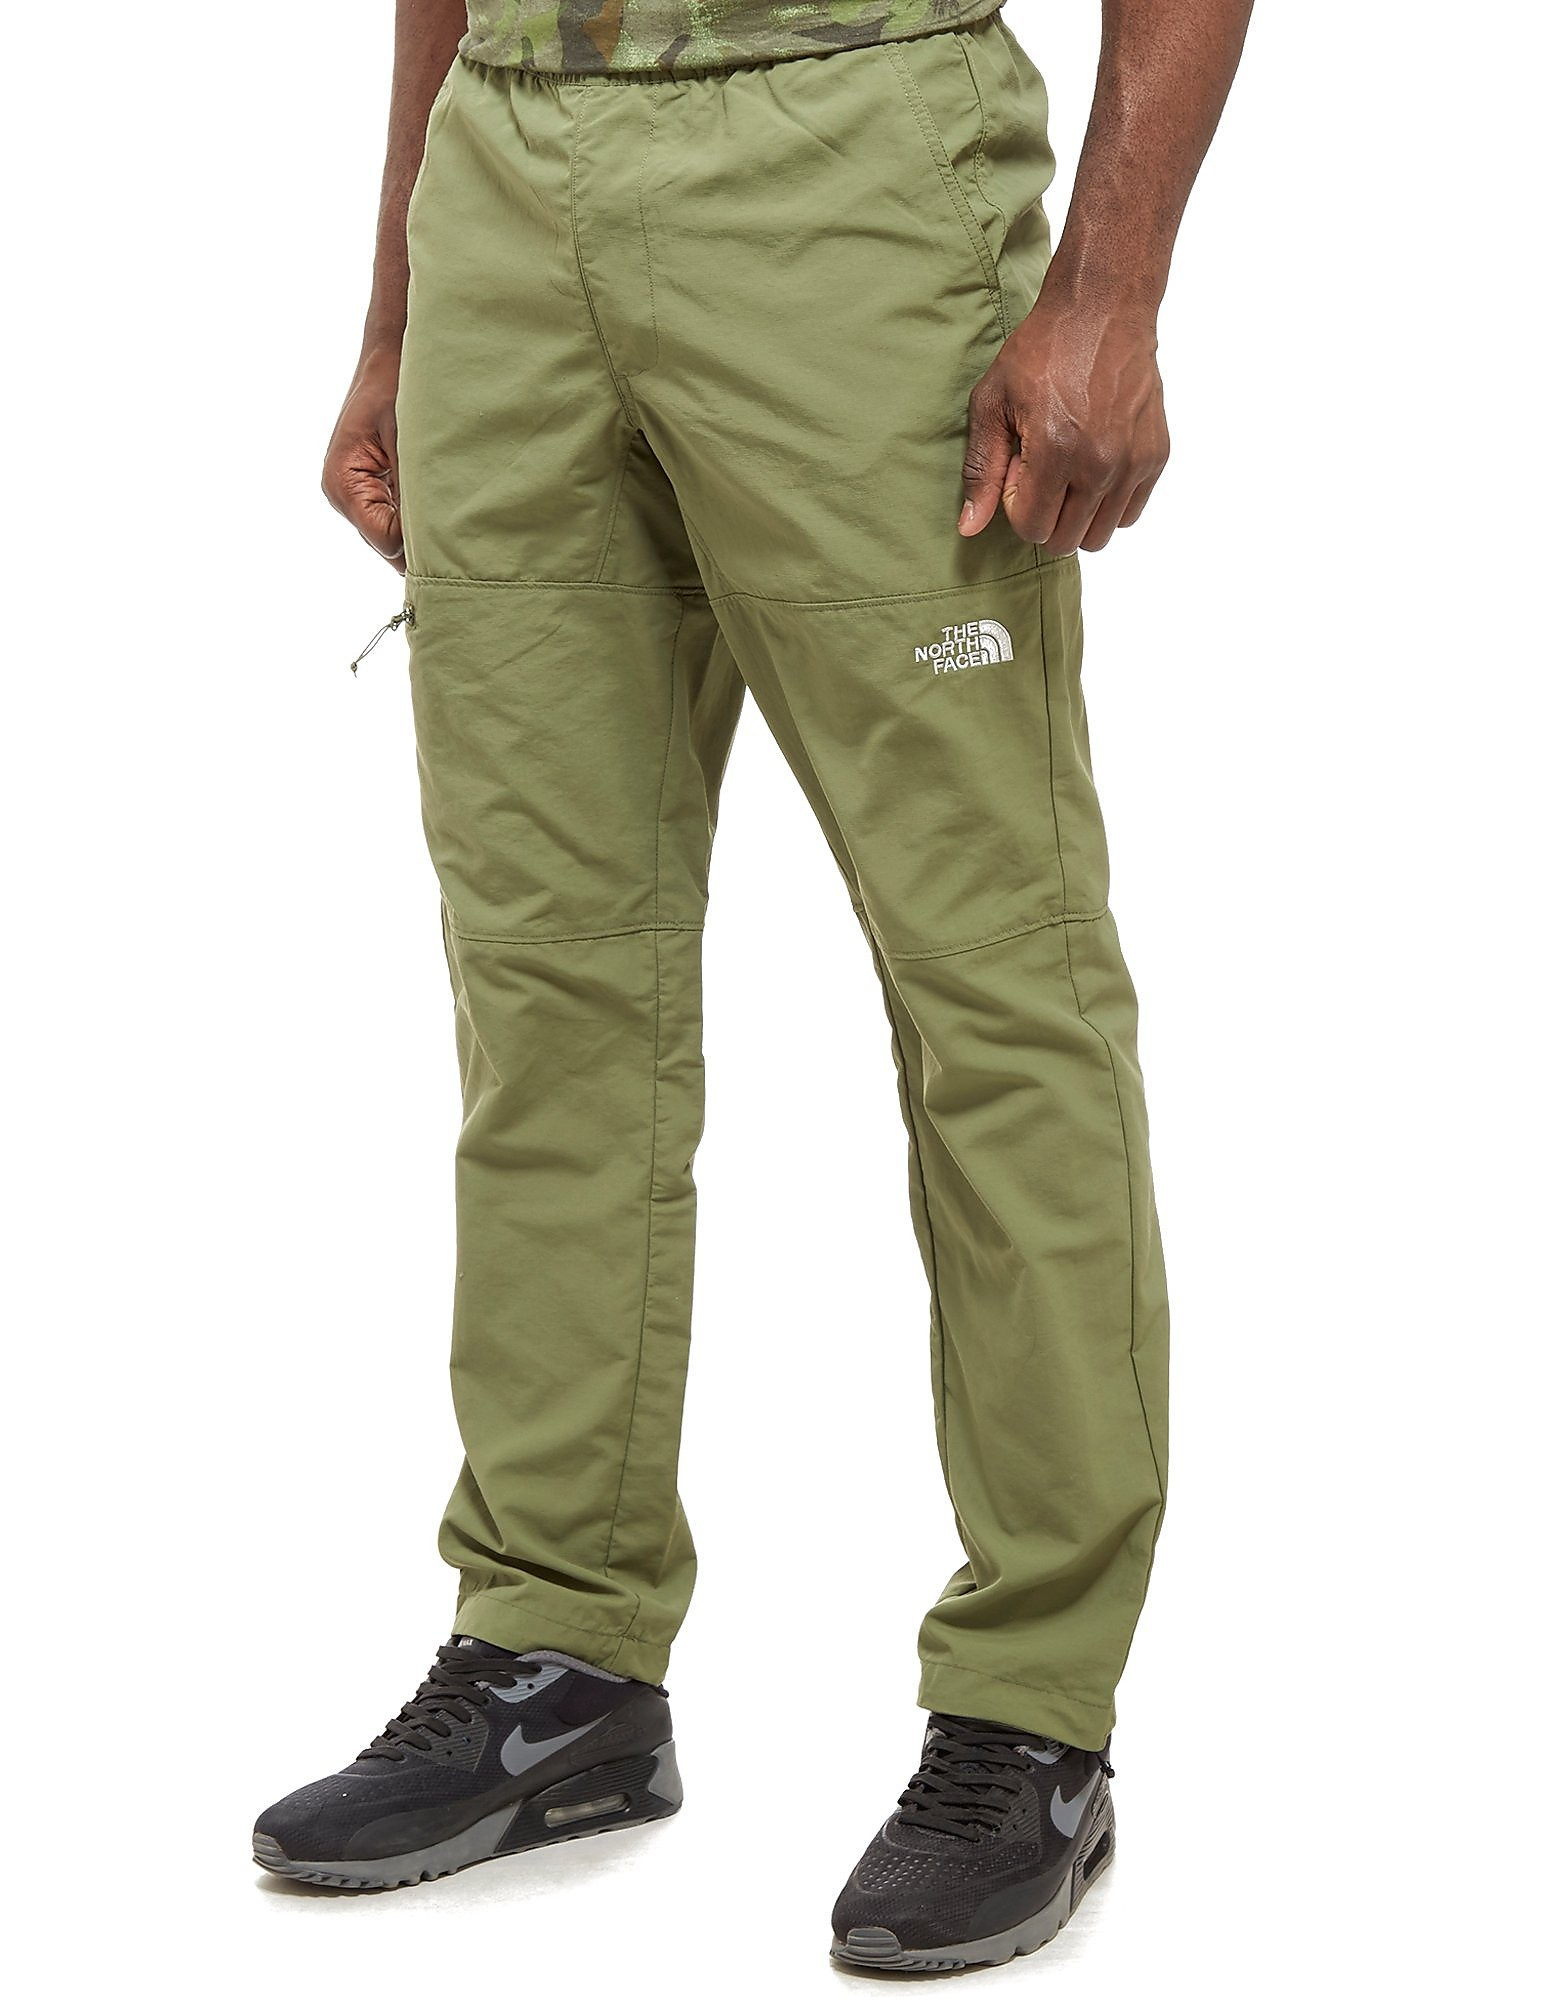 The North Face Z-Pocket Cargo Bukser Herre